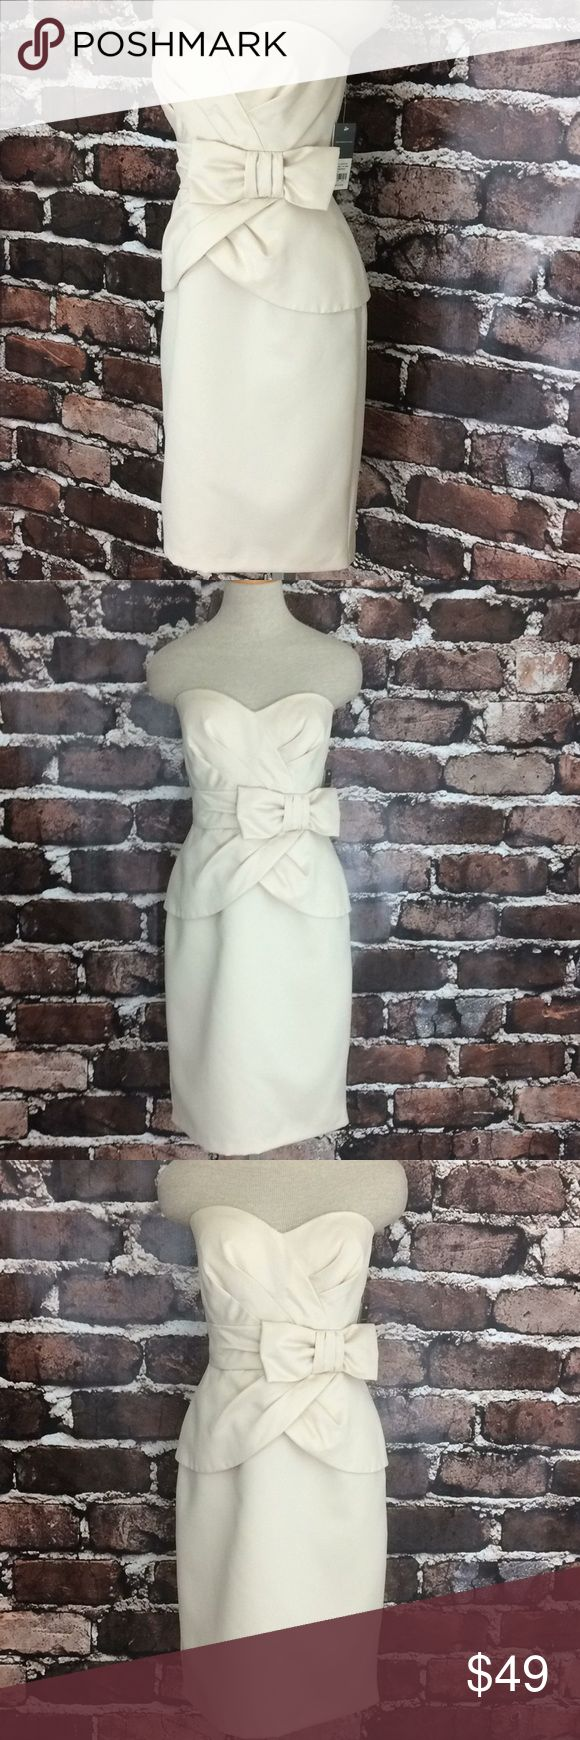 """Donna Ricco strapless midi dress bow ivory new L Donna Ricco strapless dress ivory bow midi length pencil skirt    Donna Ricco formal wear. Strapless with bow. Fully lined. Satin smooth feeling polyester. Cream in color """"bisque"""". Perfect for your celebration, or a gift.    Strapless off white dress Donna Ricco midi straight skirt new  17"""" armpit to armpit, 29"""" waist, 38"""" hips, 33"""" length Dresses Strapless"""